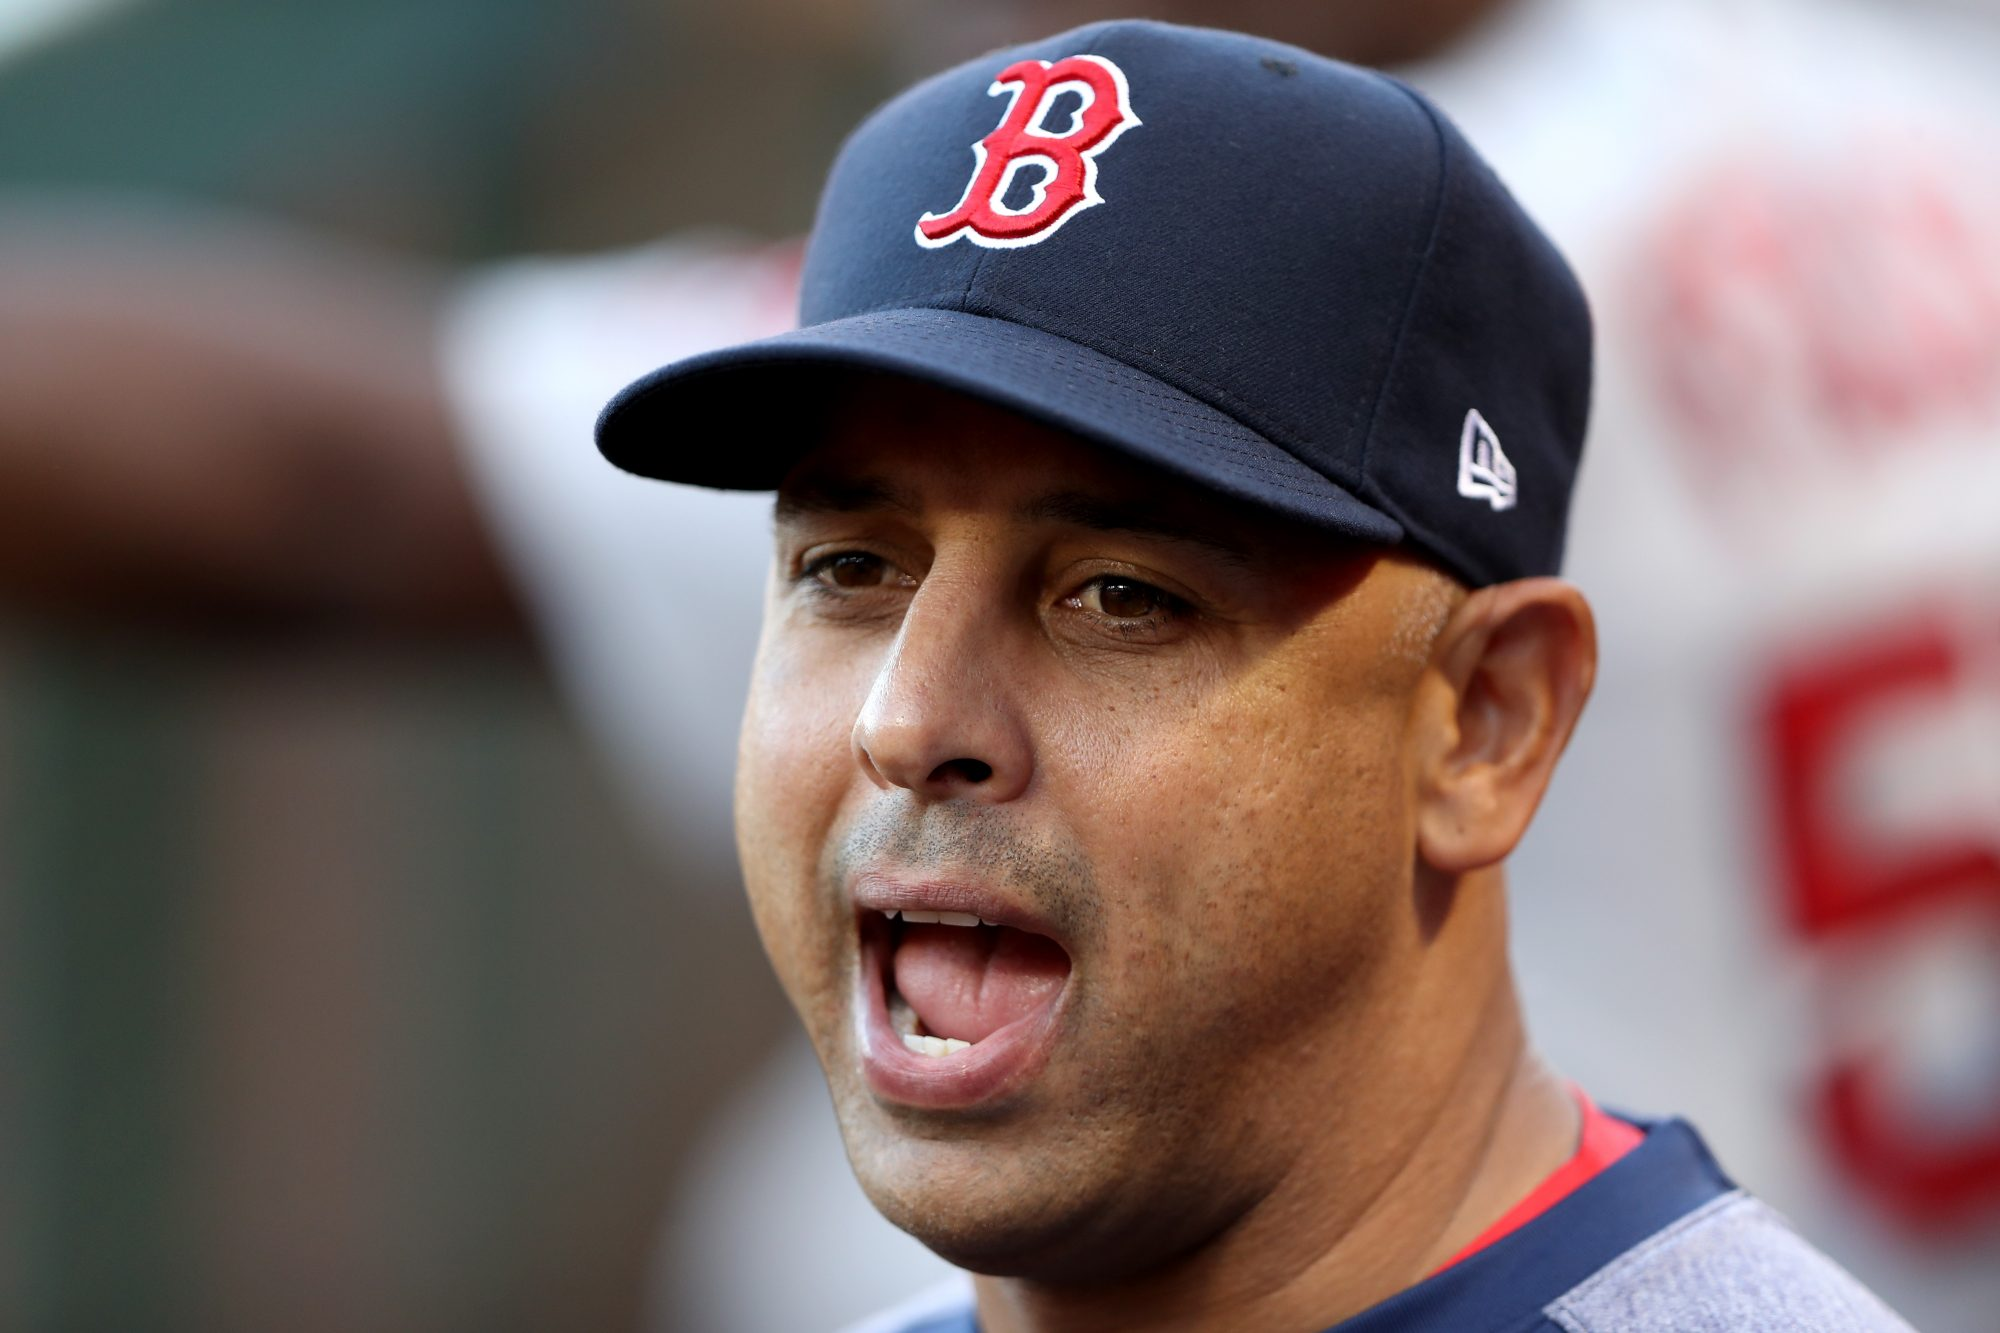 Alex Cora makes a stupid face as manager of the Boston Red Sox, back before he was fired for being a cheater.